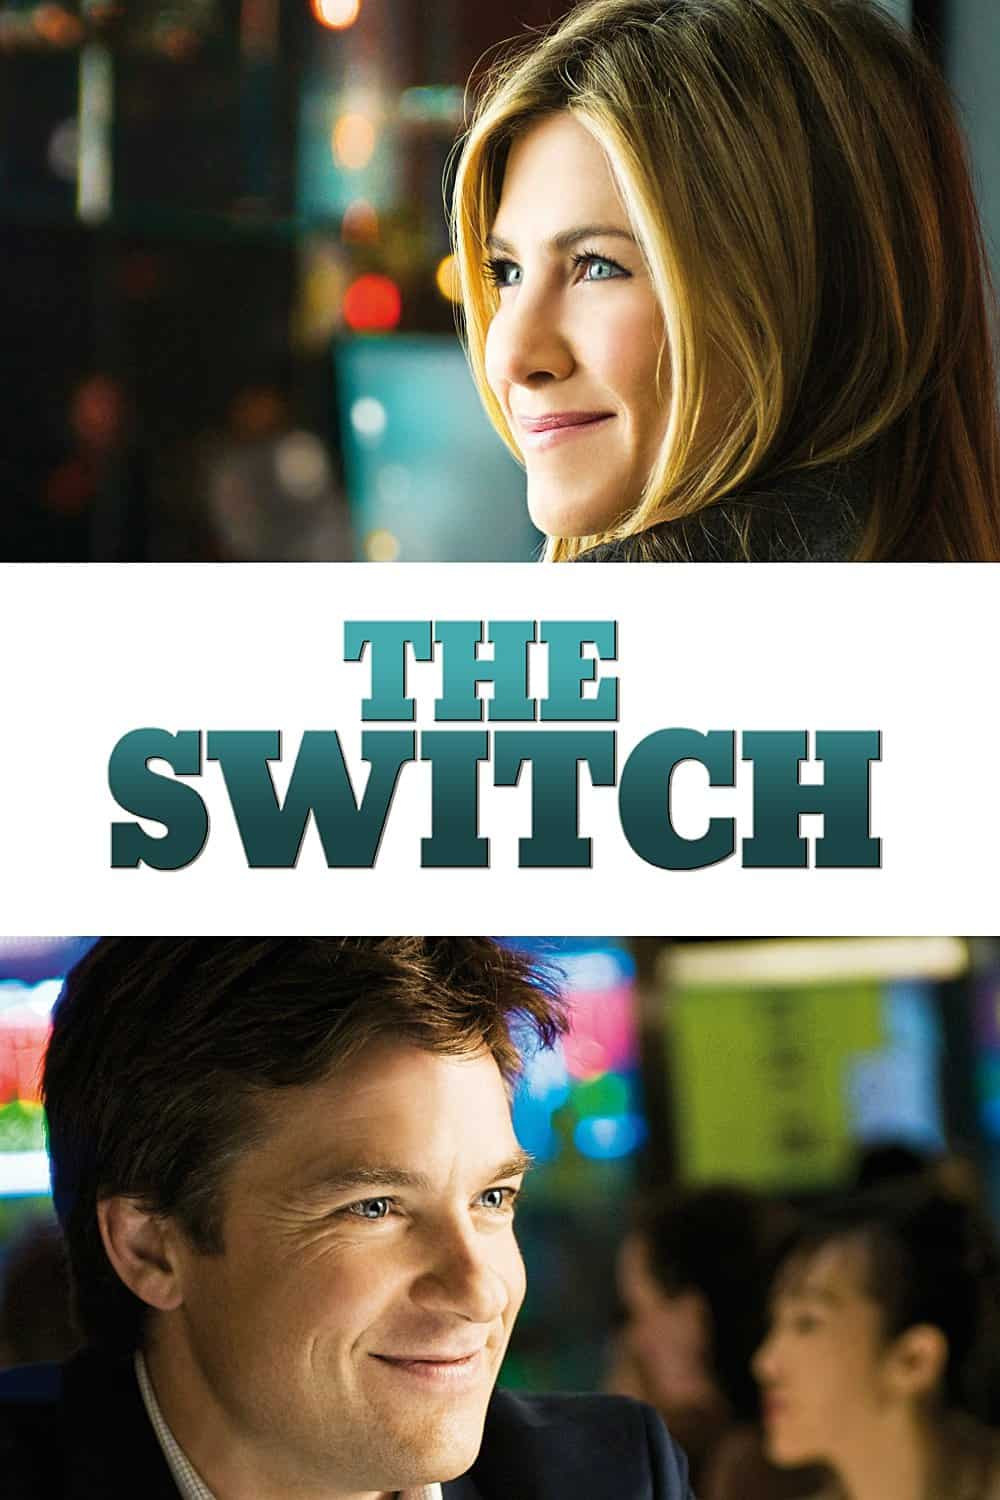 The Switch, 2010